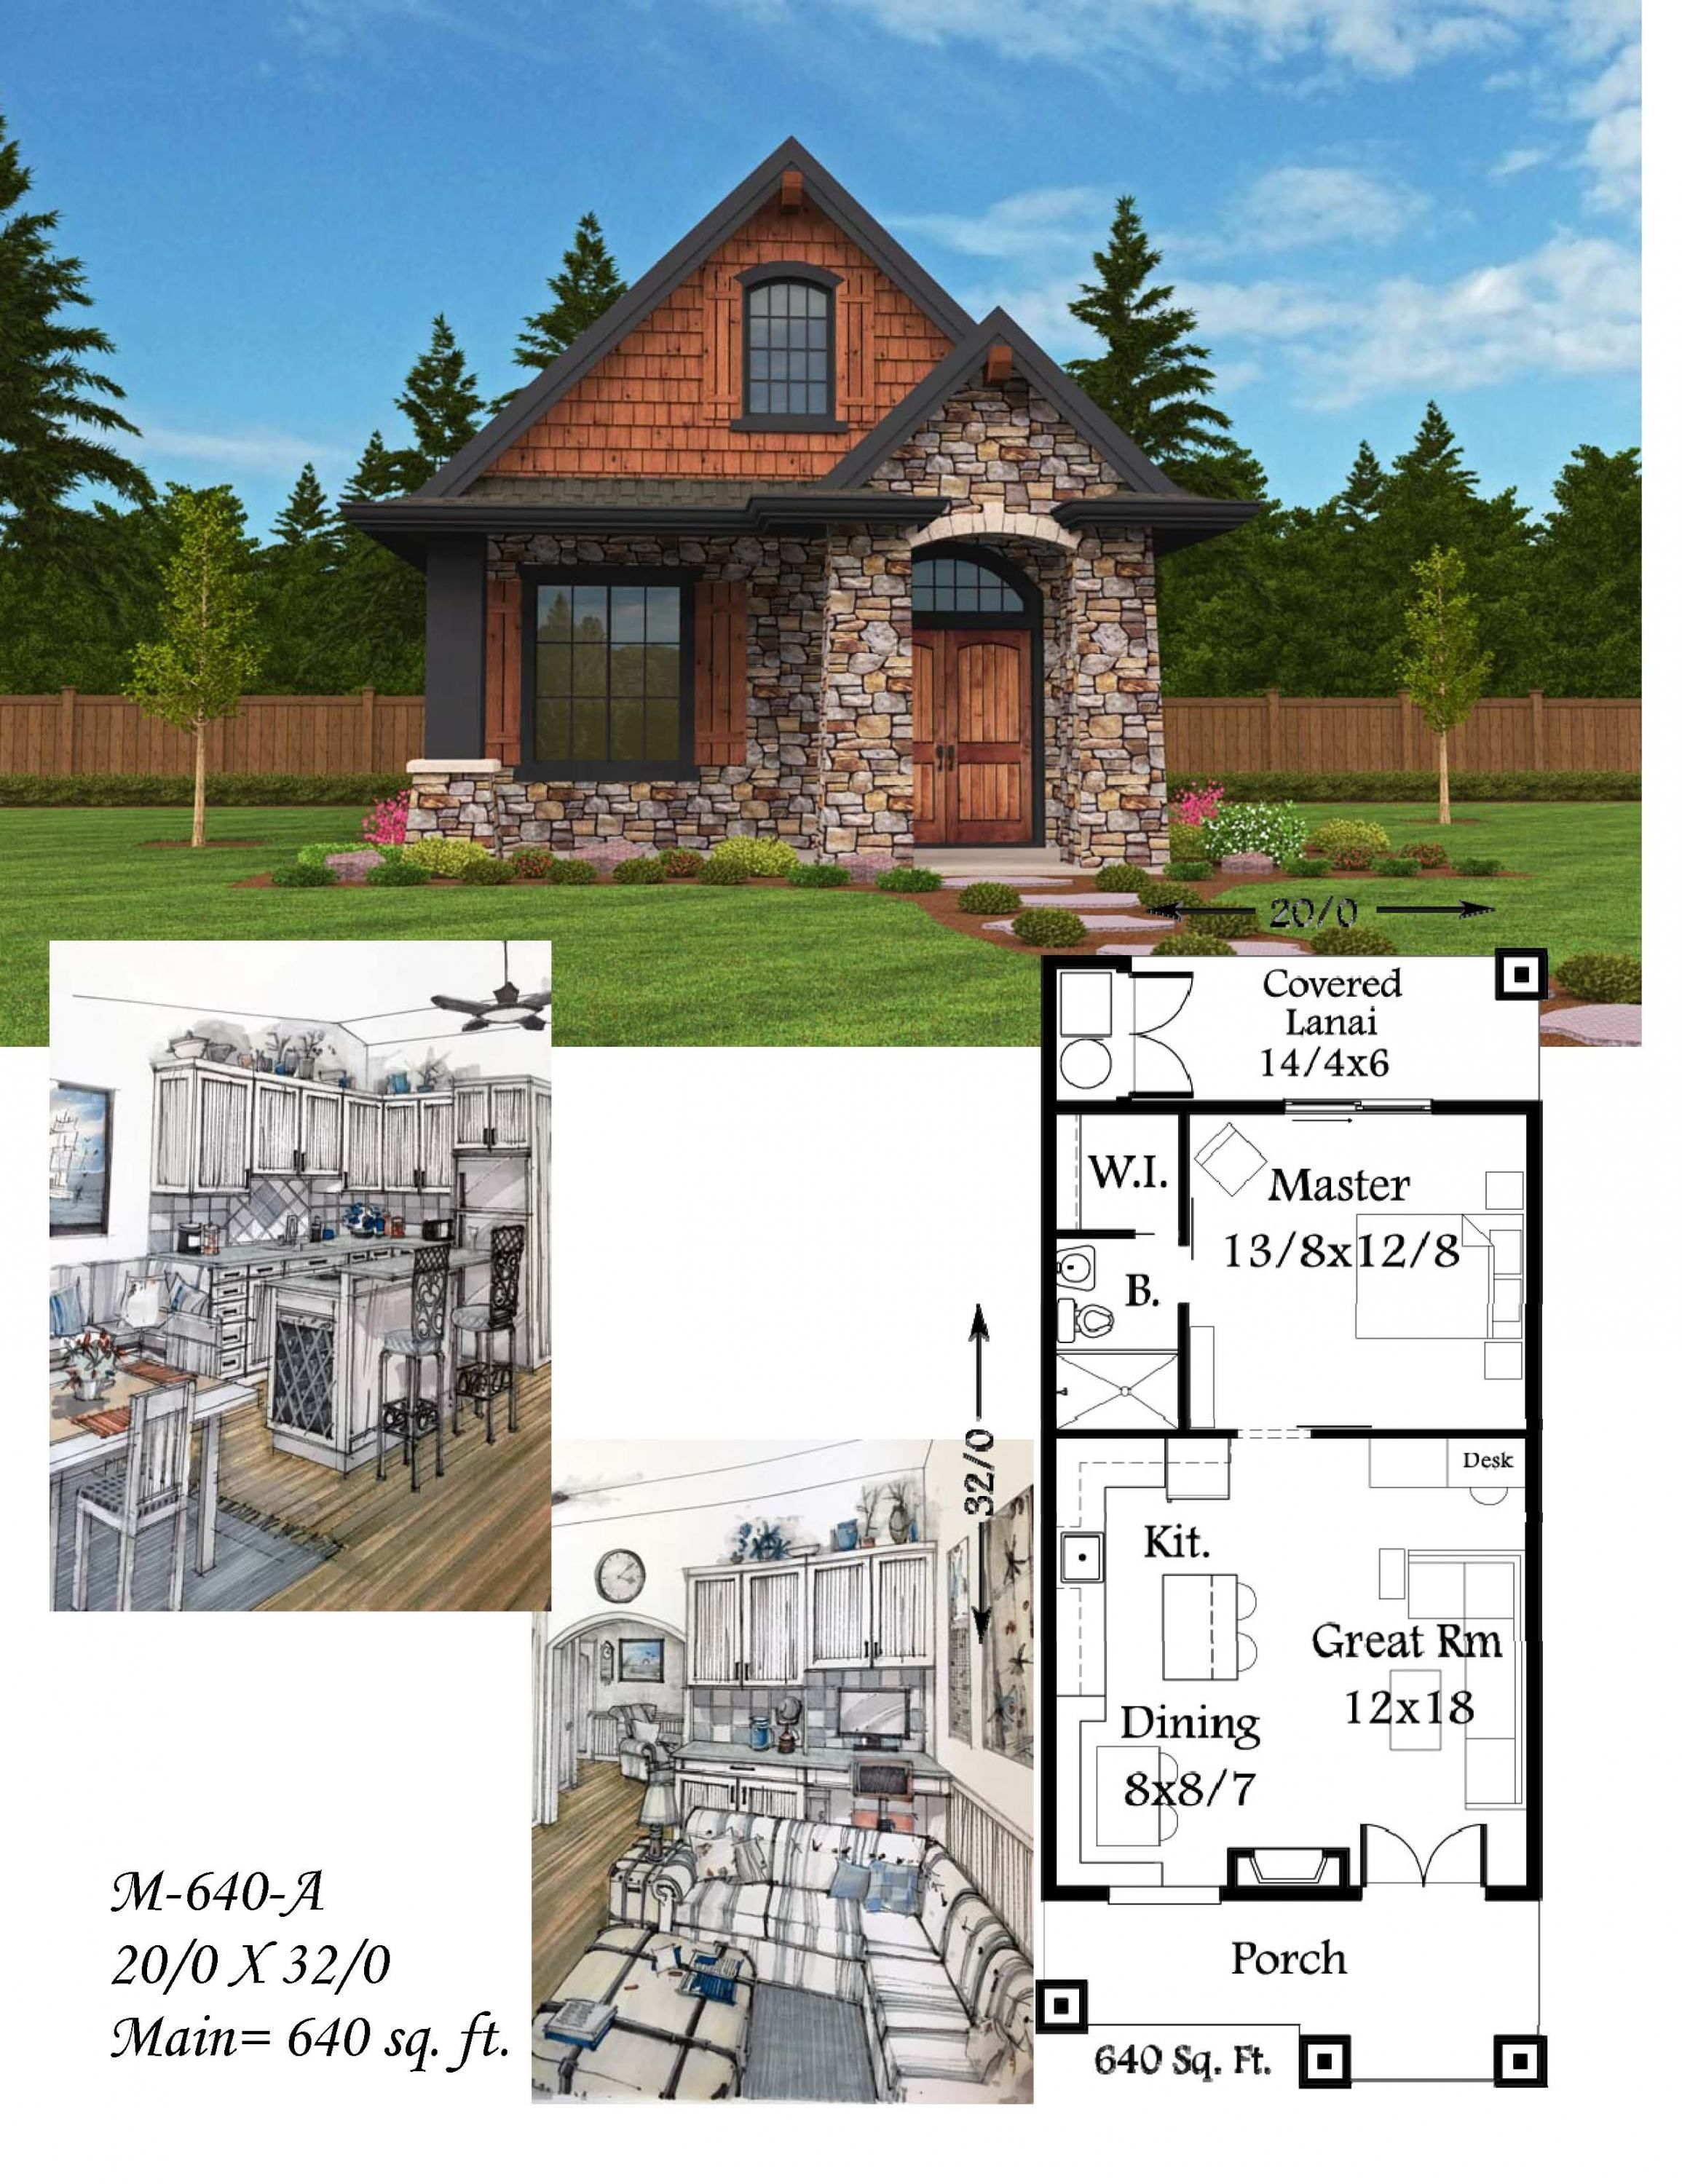 Montana house plan bungalow casita style cottage for Tuscan home plans with casitas